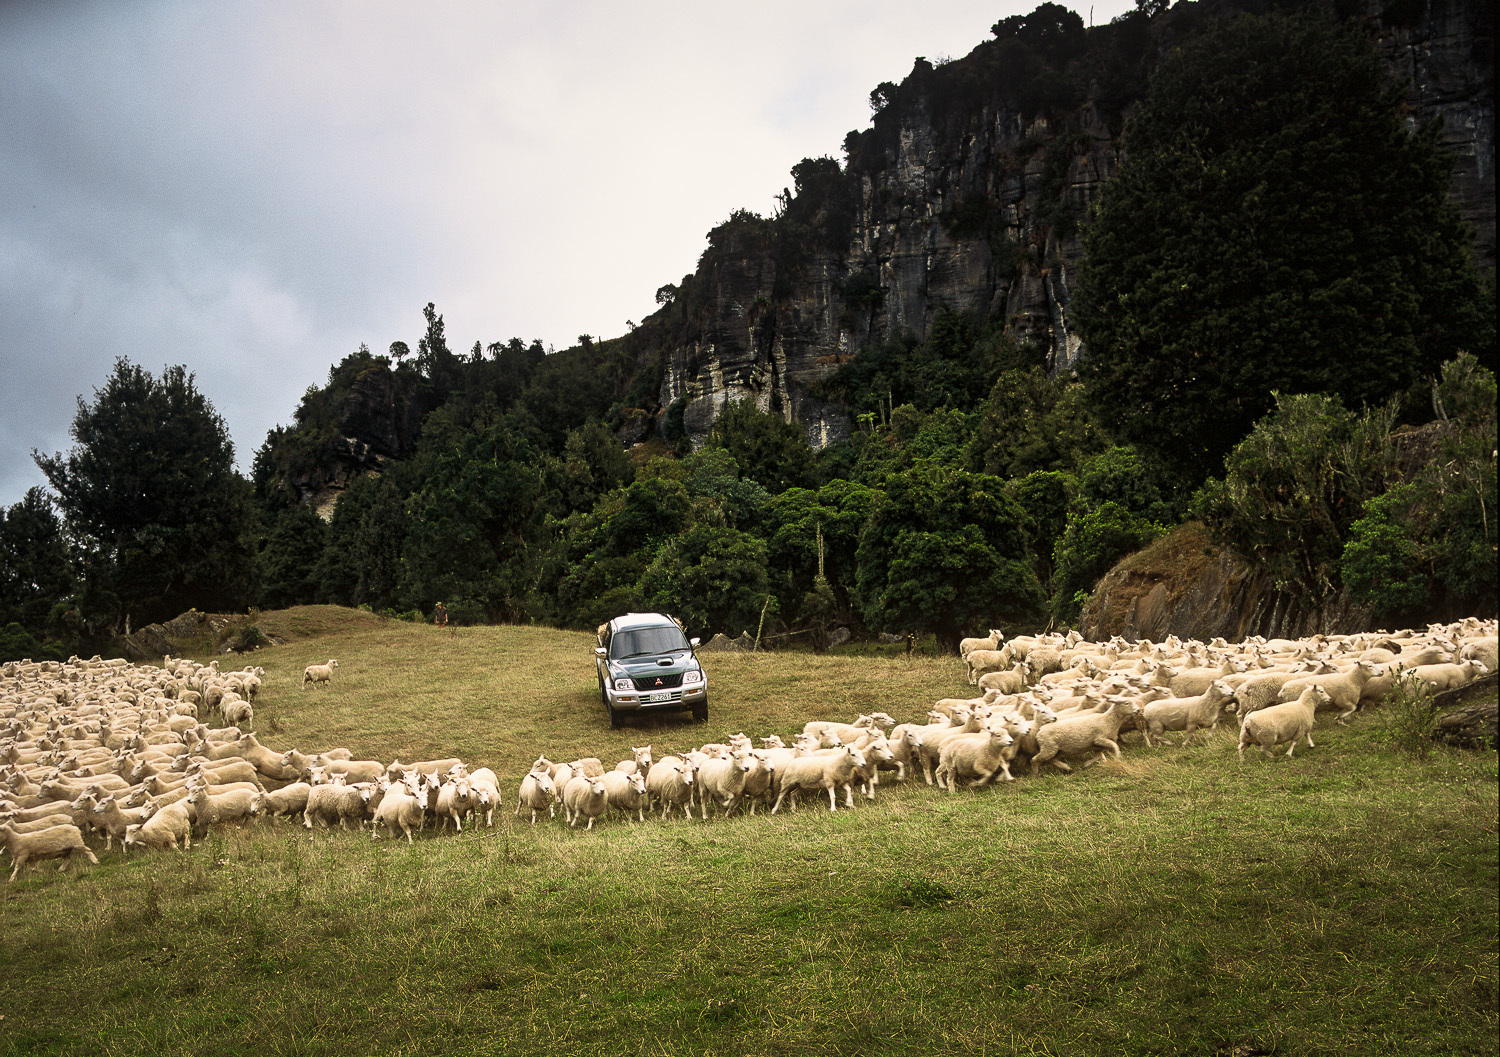 Farmer herding sheep in ute.